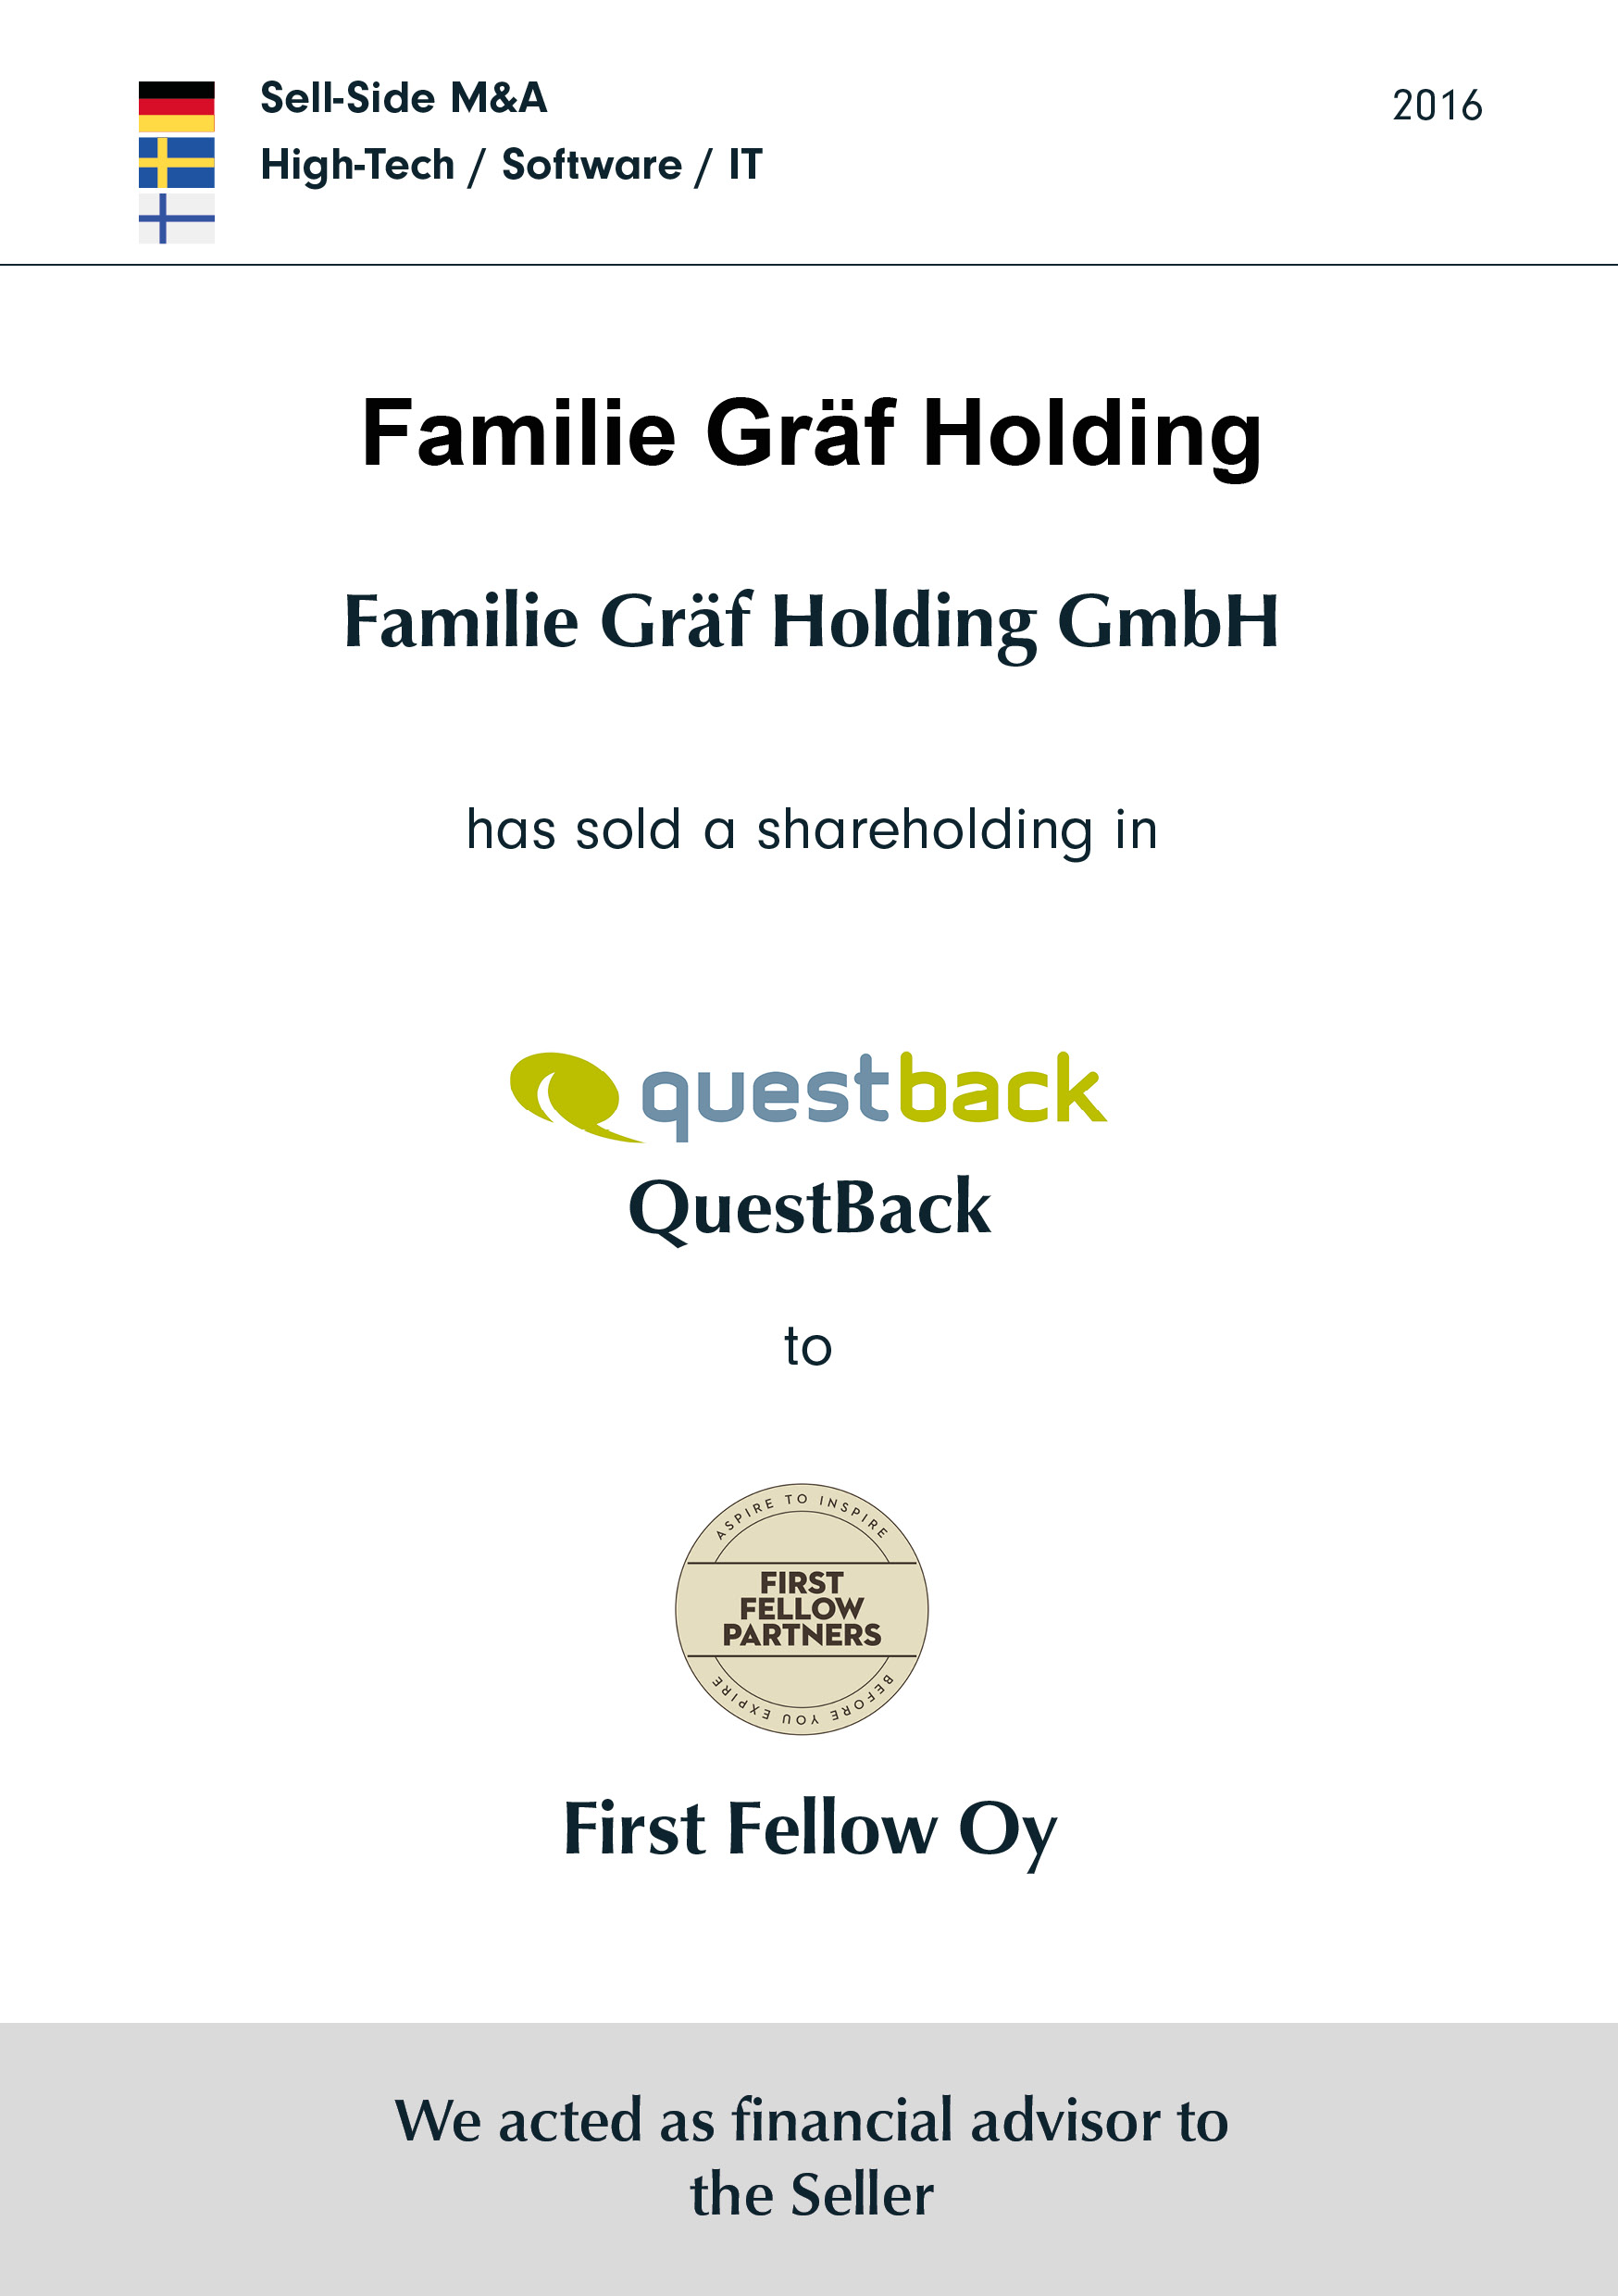 Familie Gräf Holding has sold a shareholding in Questback to FIRST FELLOW OY